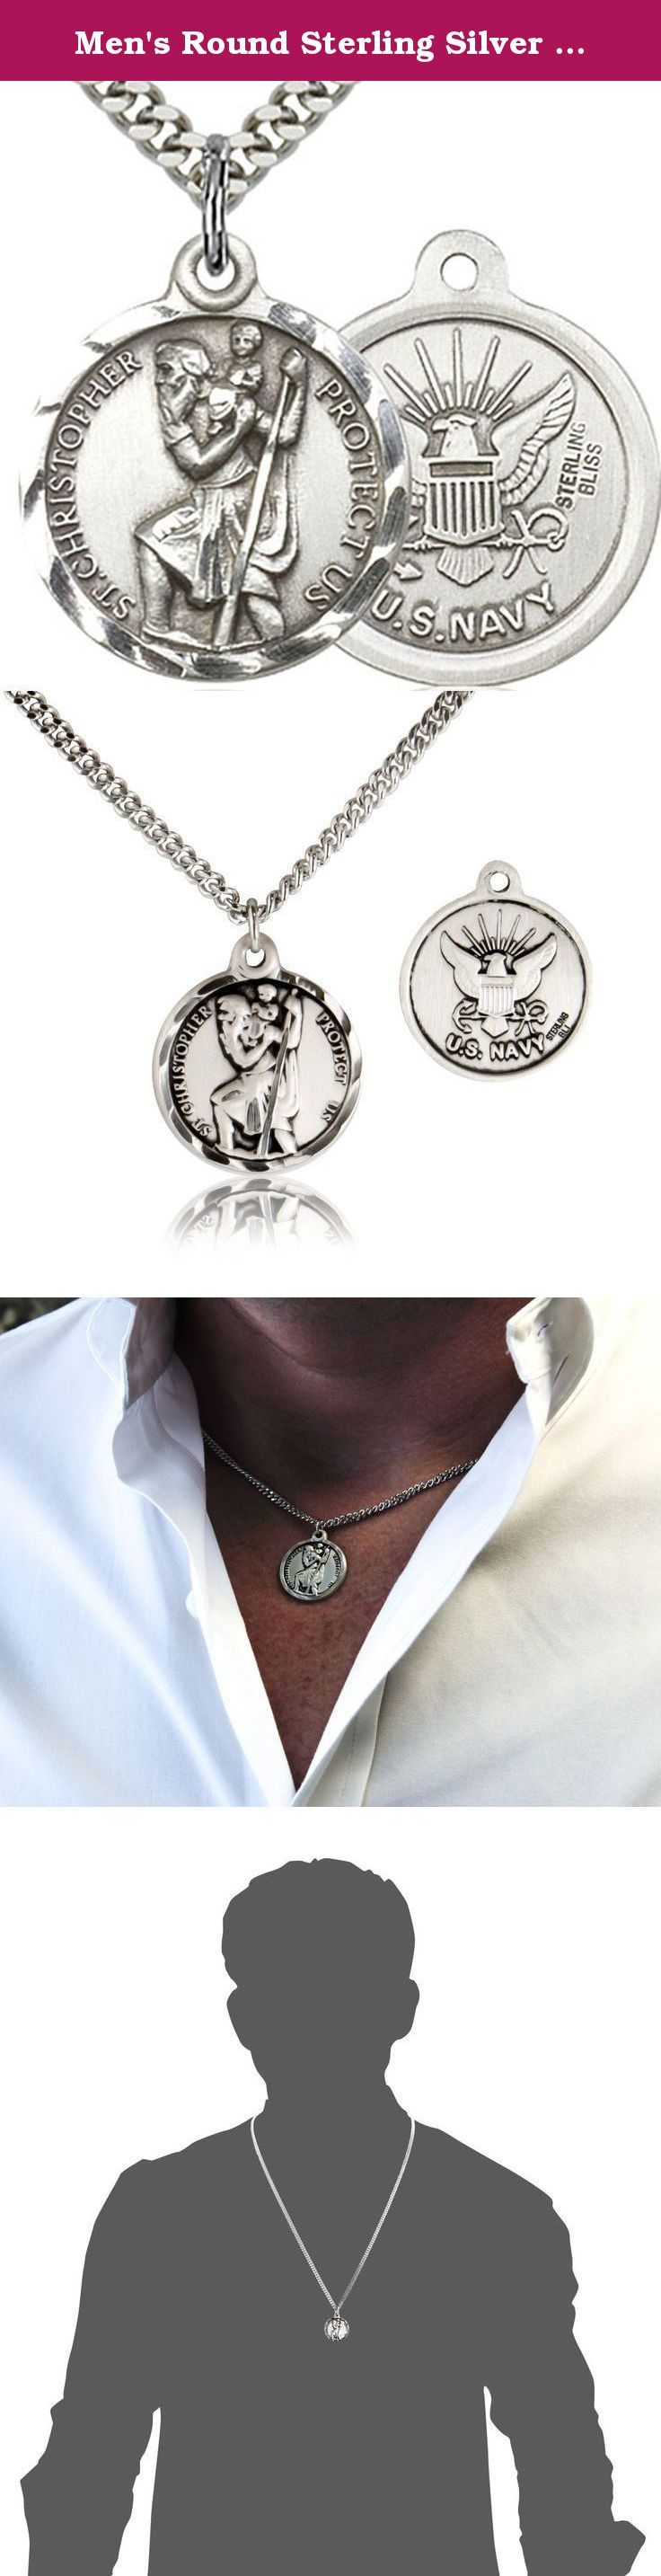 """Men's Round Sterling Silver St. Christopher Navy Medal + 24 Inch Sterling Silver Chain & Clasp. This St. Christopher round Navy Medal is a great addition to anybody who is in the Navy or would like to protect a loved one. The front of the medal depicts an image of St. Christopher with the words around the image reading """"St. Christopher Protect Us"""". The back of the medal depicts the U.S Navy emblem. Select above which chain style you want from the style options above: * a 24 inch stainless..."""